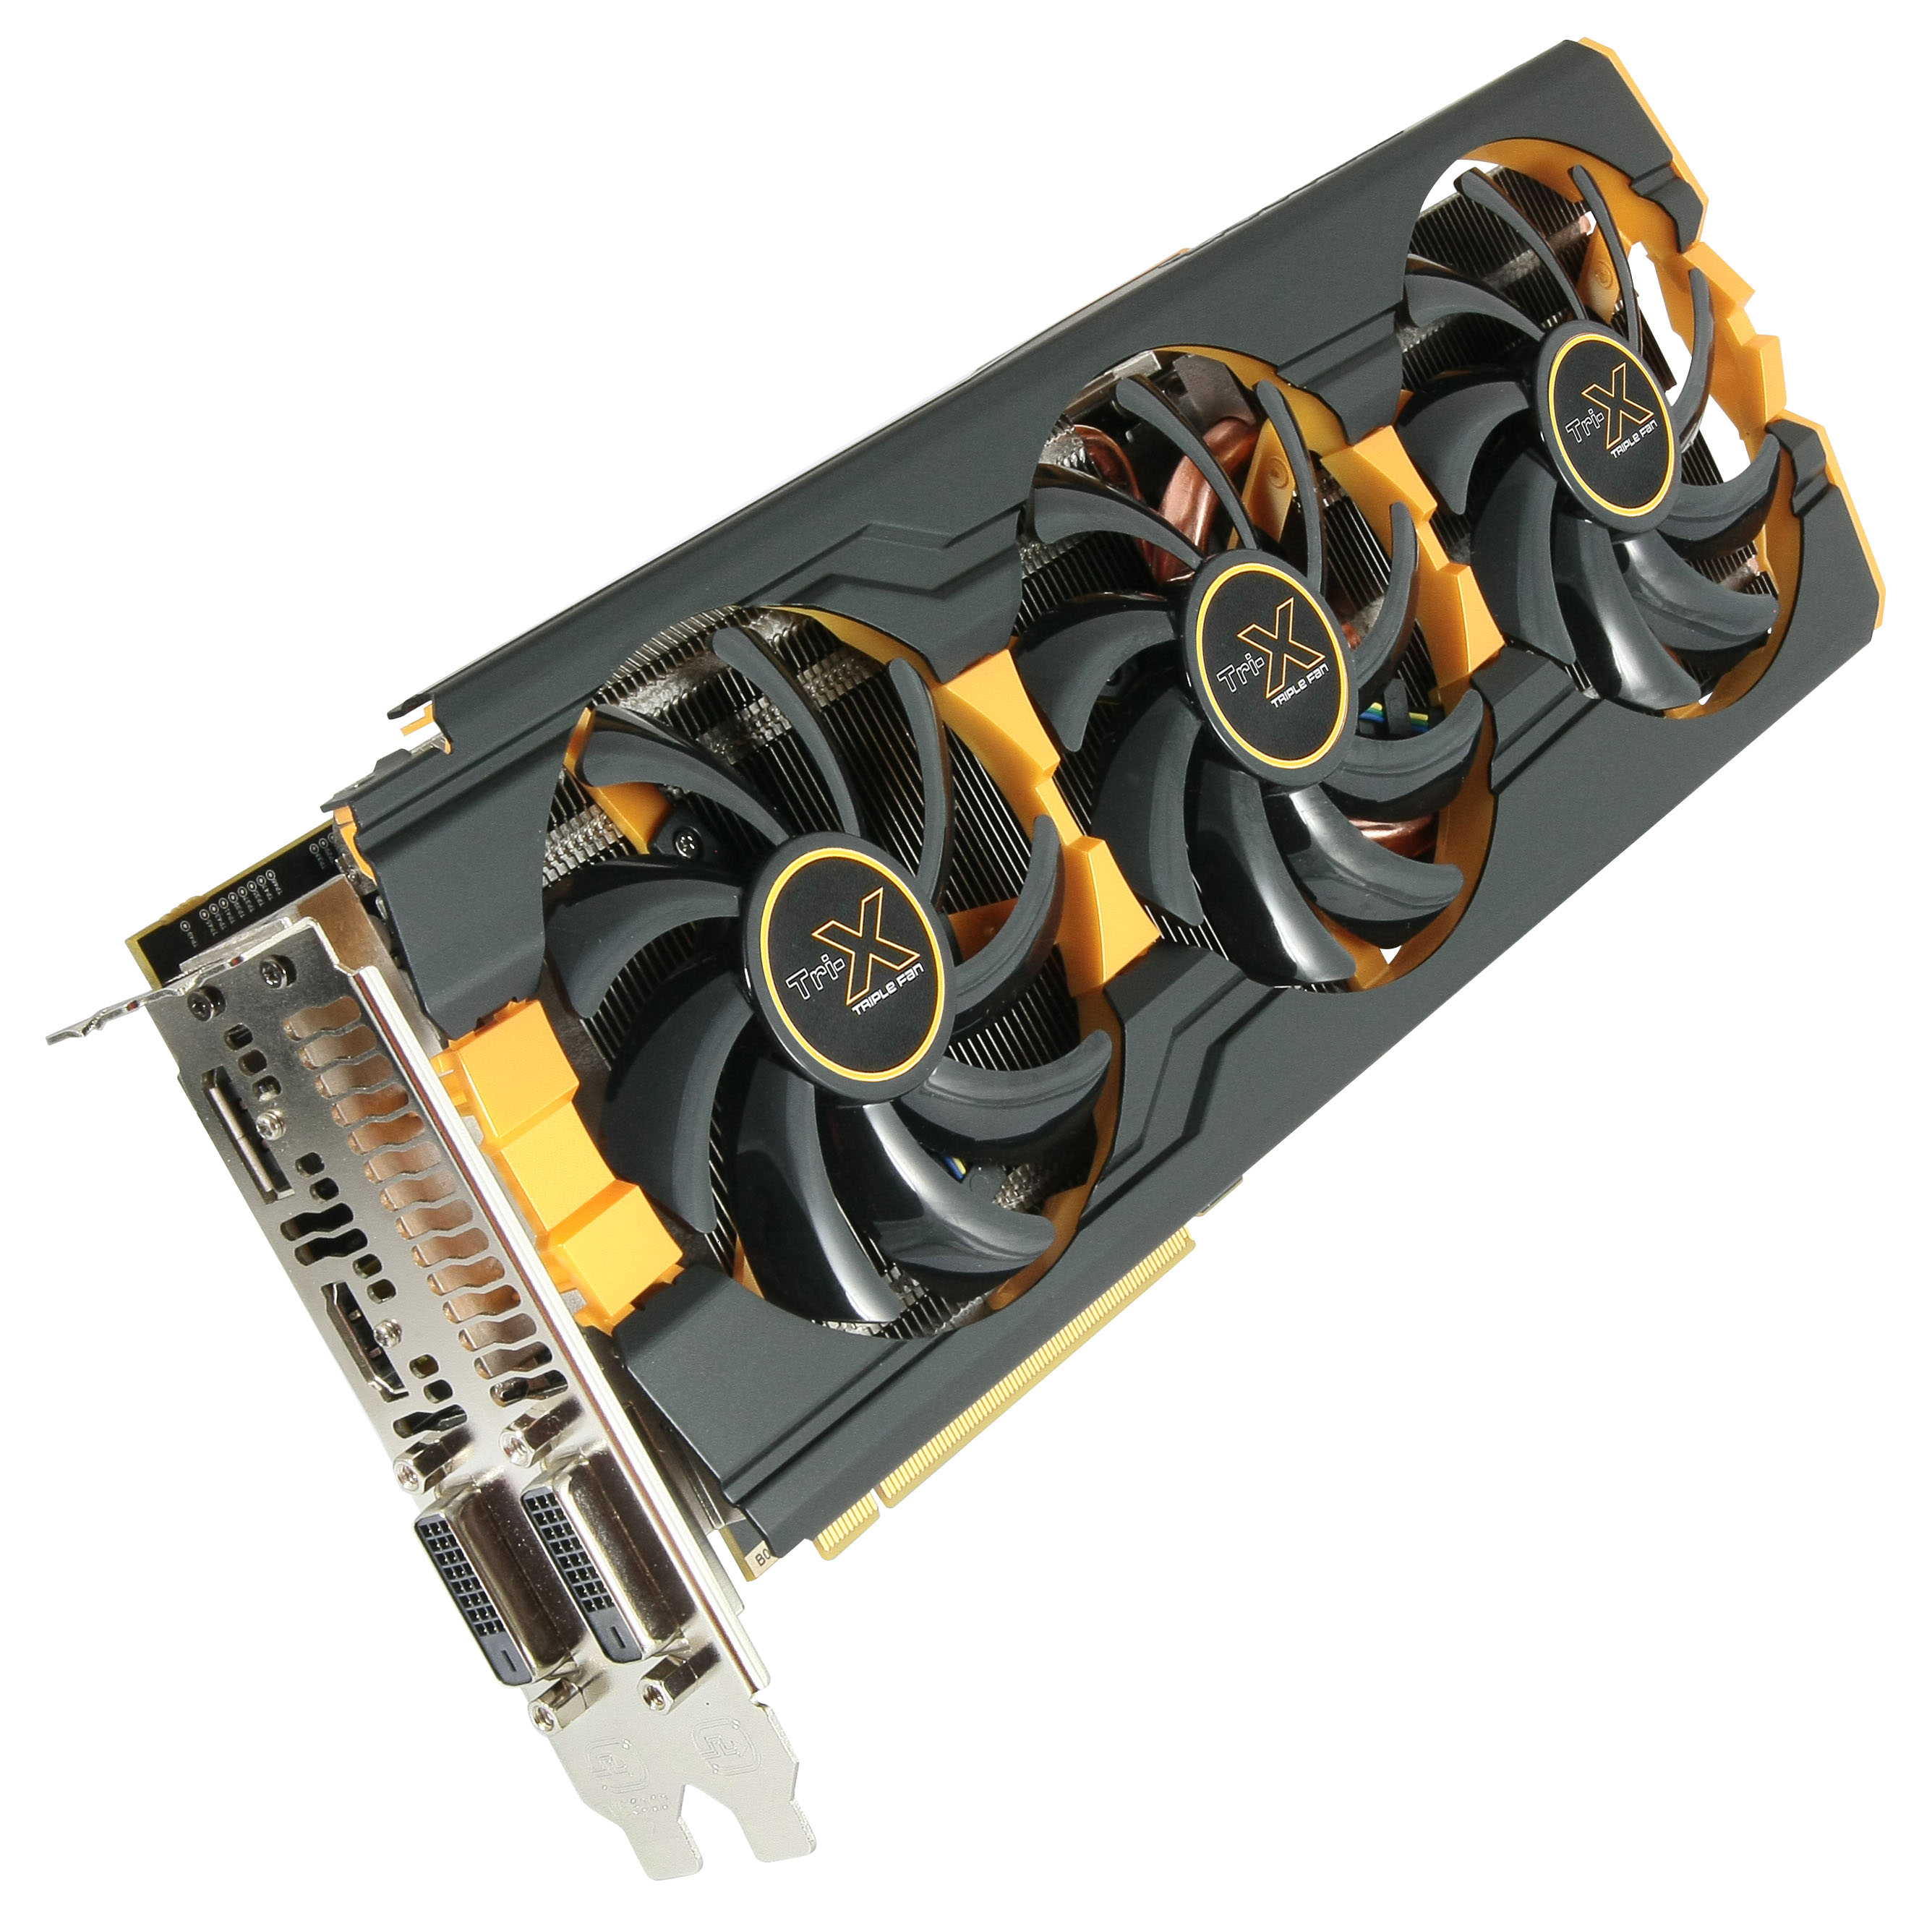 Sapphire Radeon R9 290 Tri X Oc Review Our First Custom Cooled 290